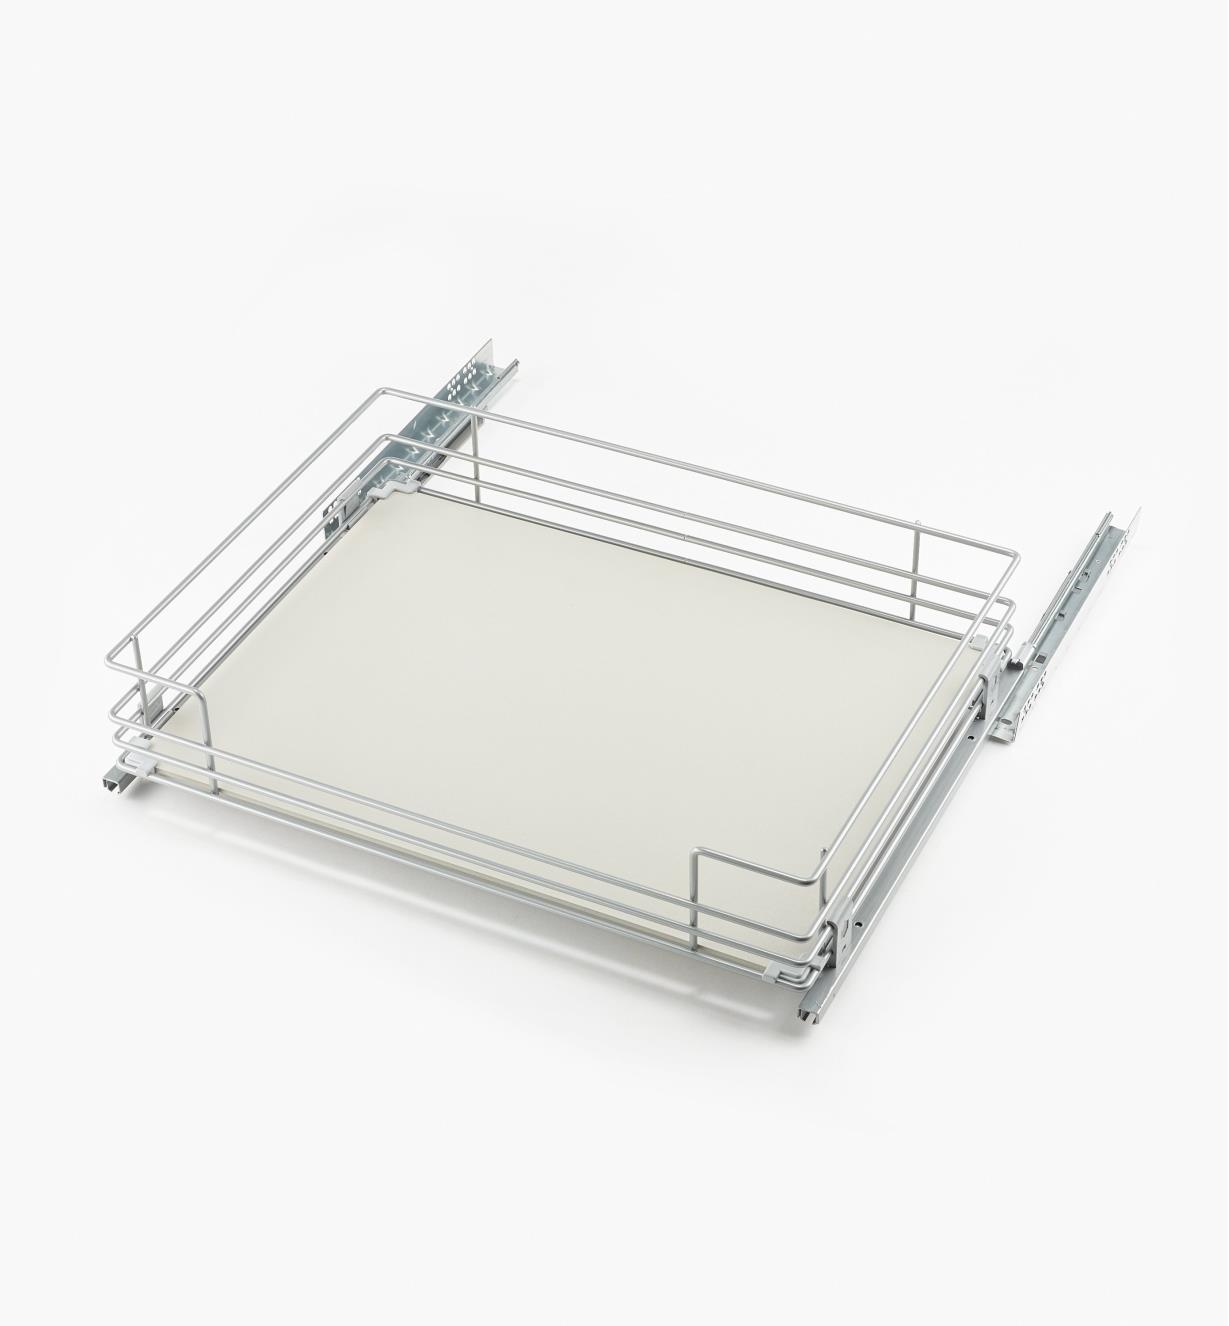 12K3083 - 610mm Solid-Bottom Pull-Out Drawer